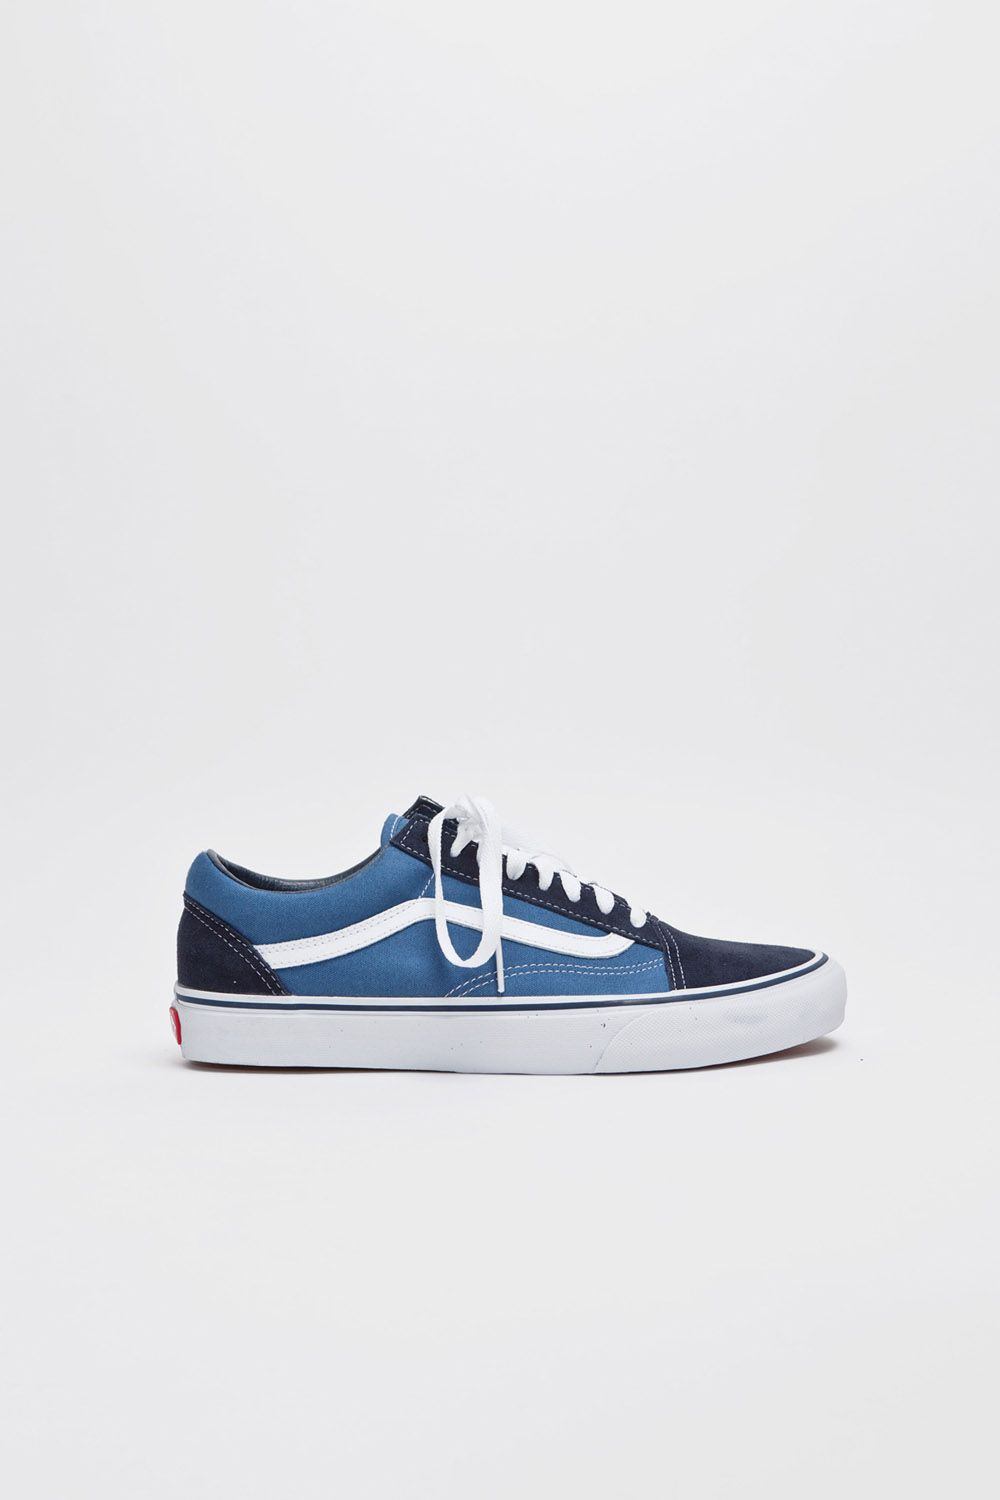 4c20eaa8a3da Dope Boy Vans Blue Suede Canvas